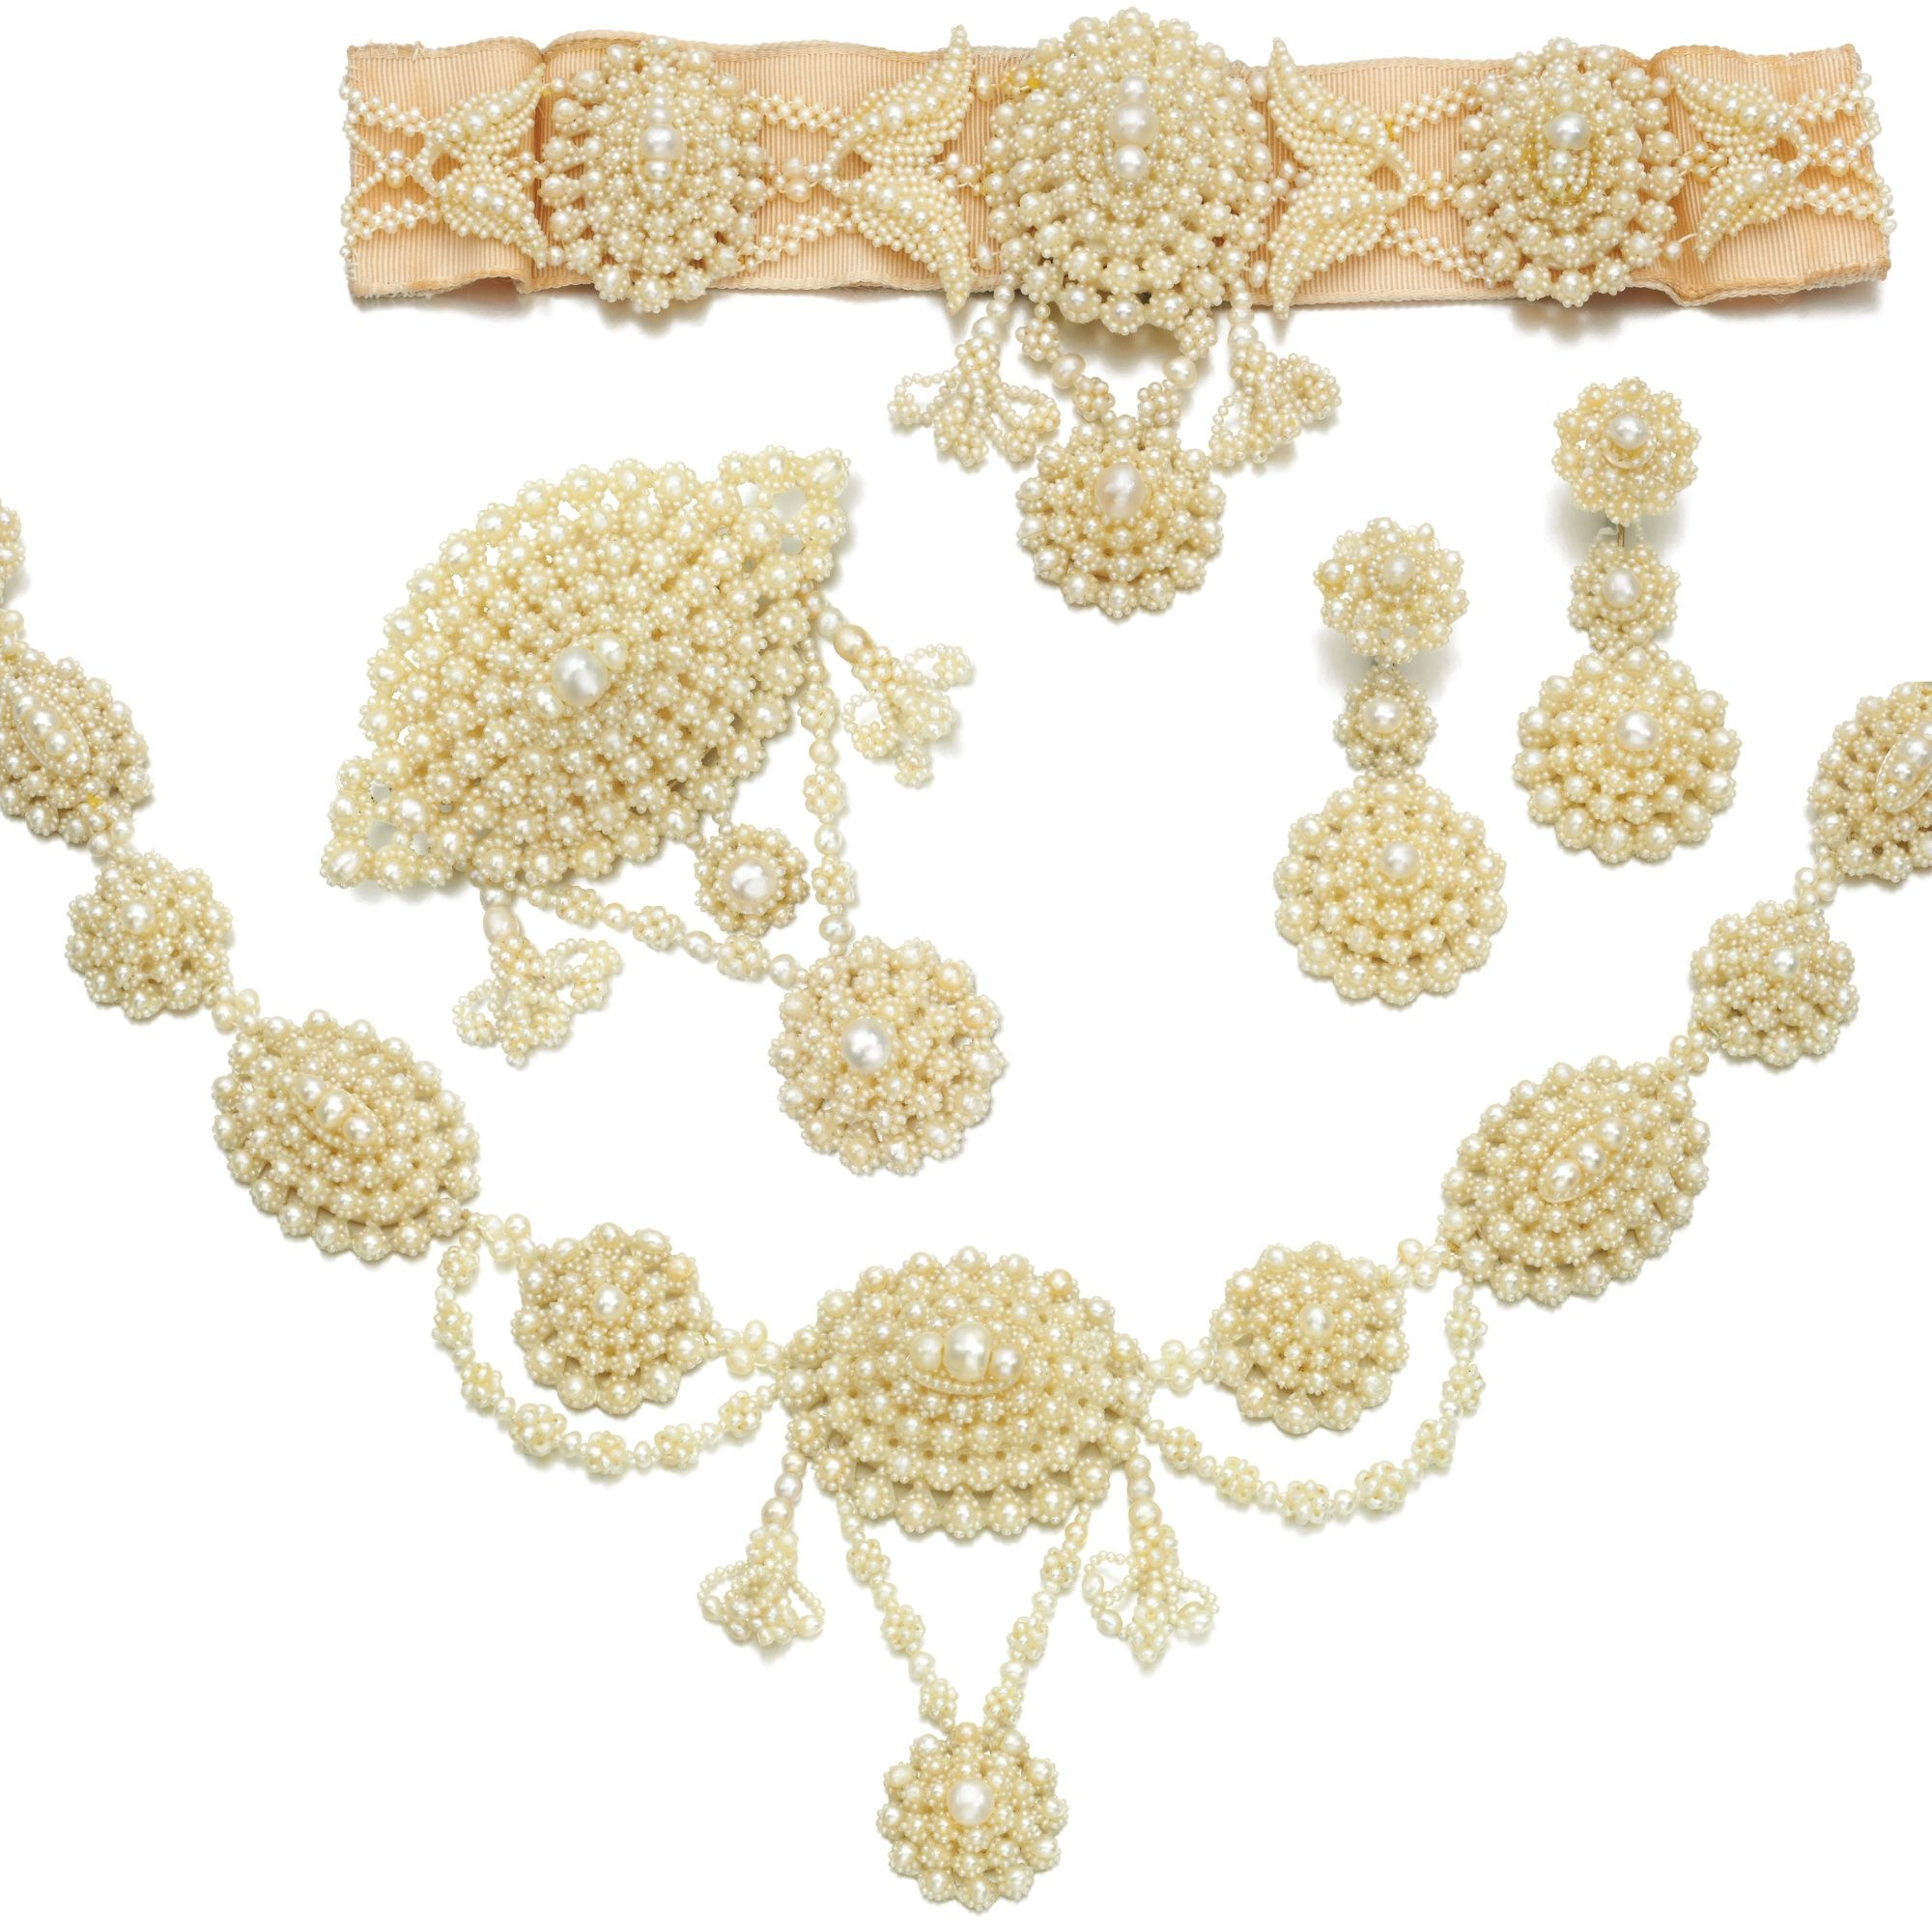 d887acfb7 Seed pearl parure, Tiffany & Co., 1850s Comprising: a necklace, brooch,  pair of pendent earrings and a collier, each composed of oval seed pearl  clusters ...